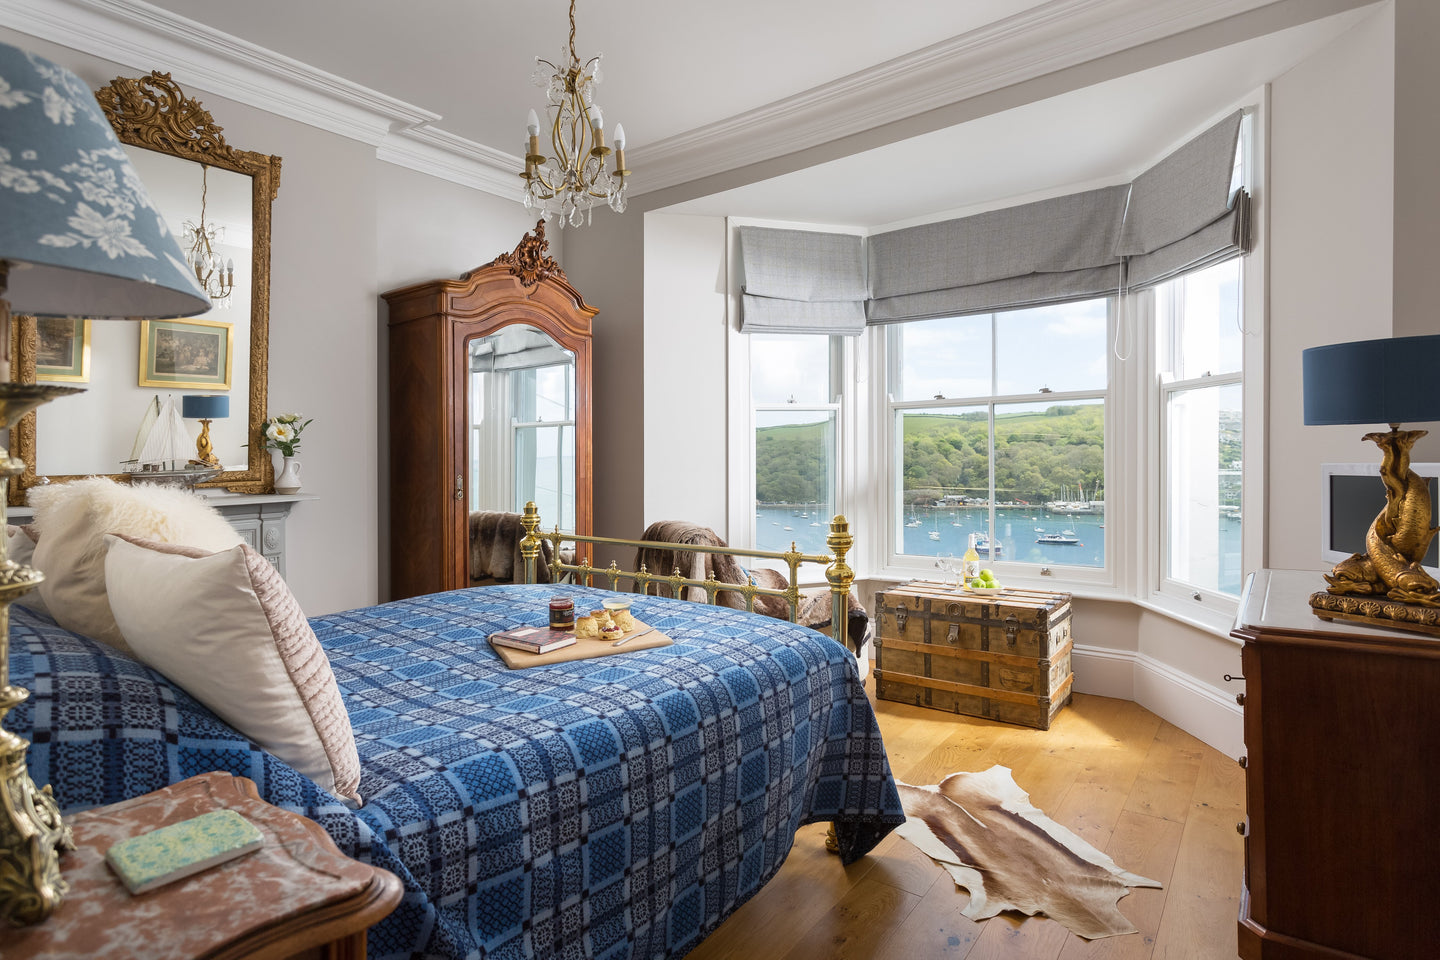 A bedroom with a view